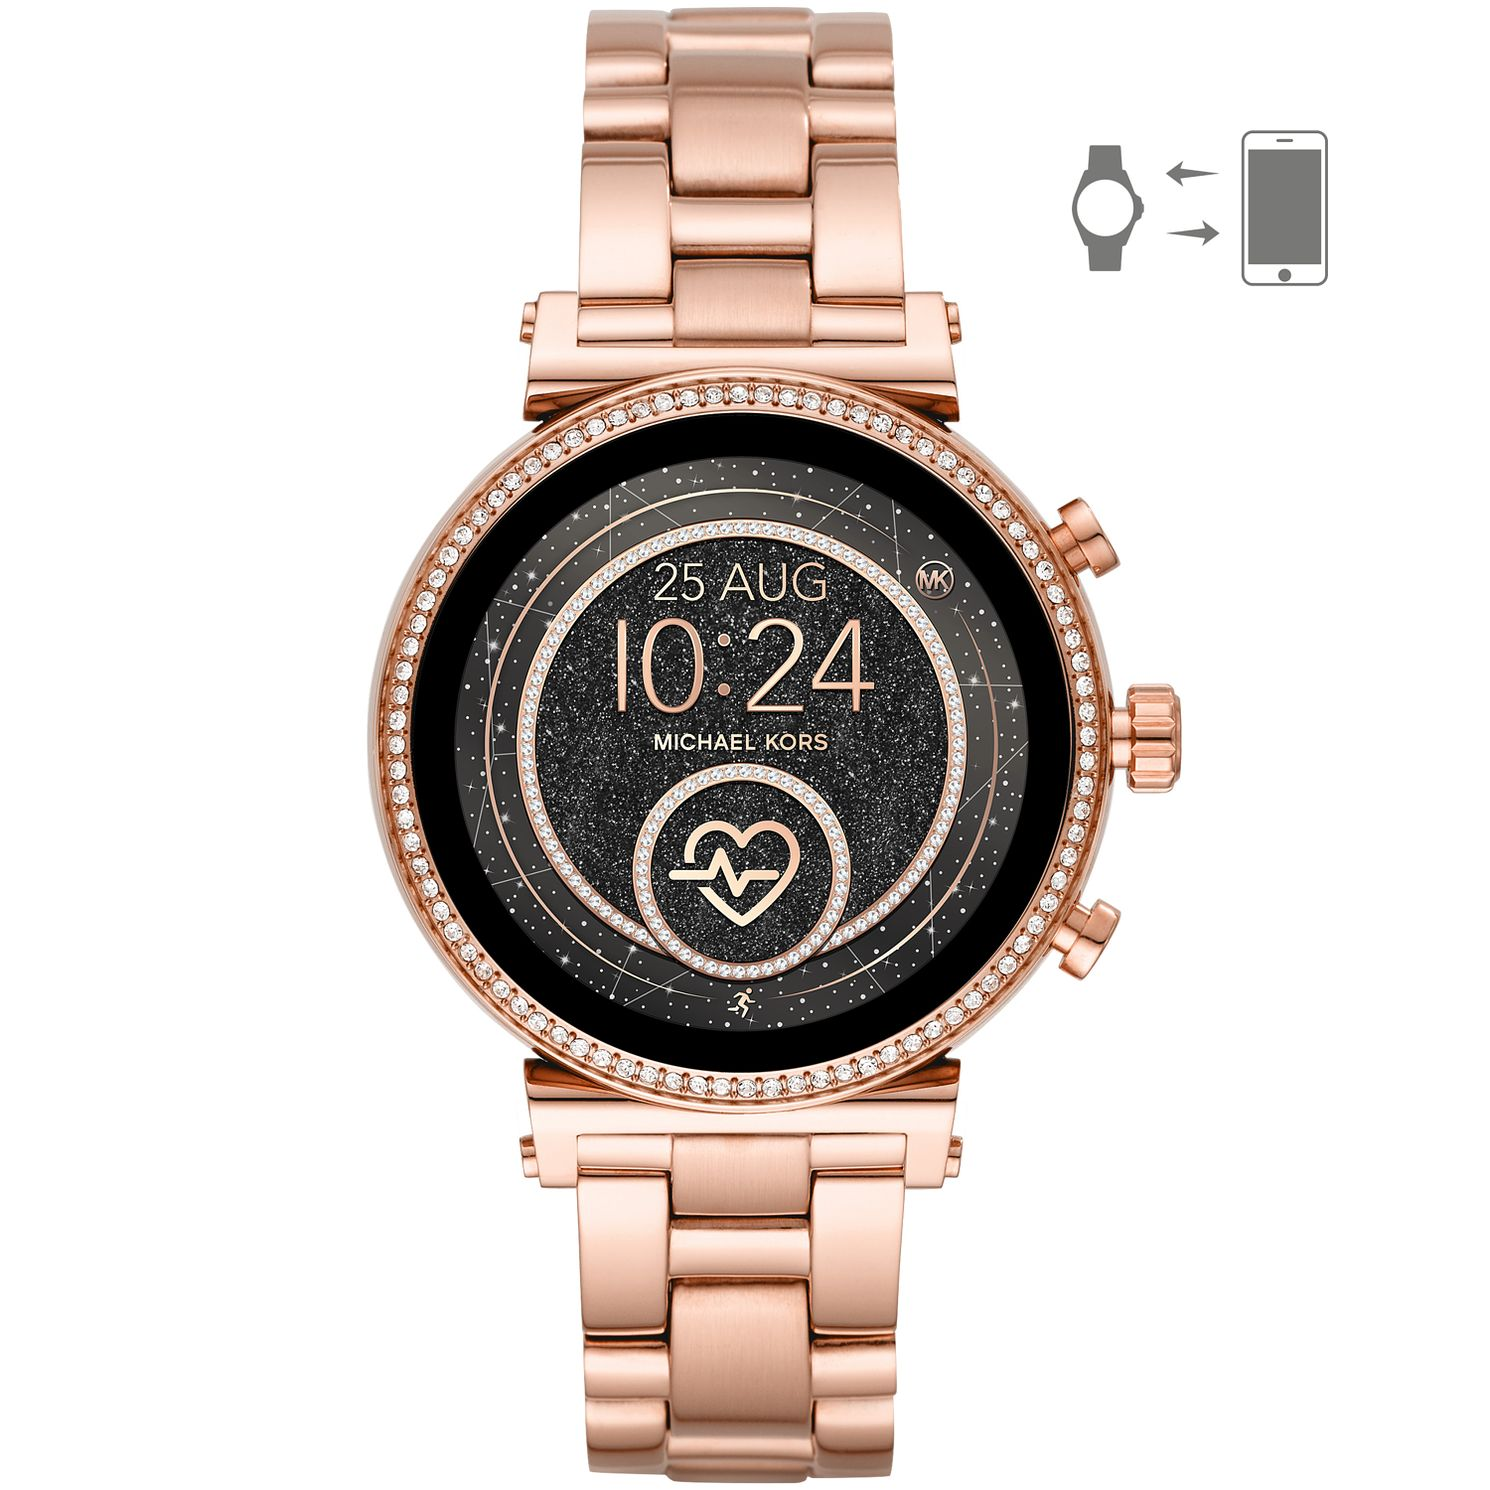 Michael Kors Sofie HR Gen 4 Rose Gold Tone Smartwatch - Product number 2295822